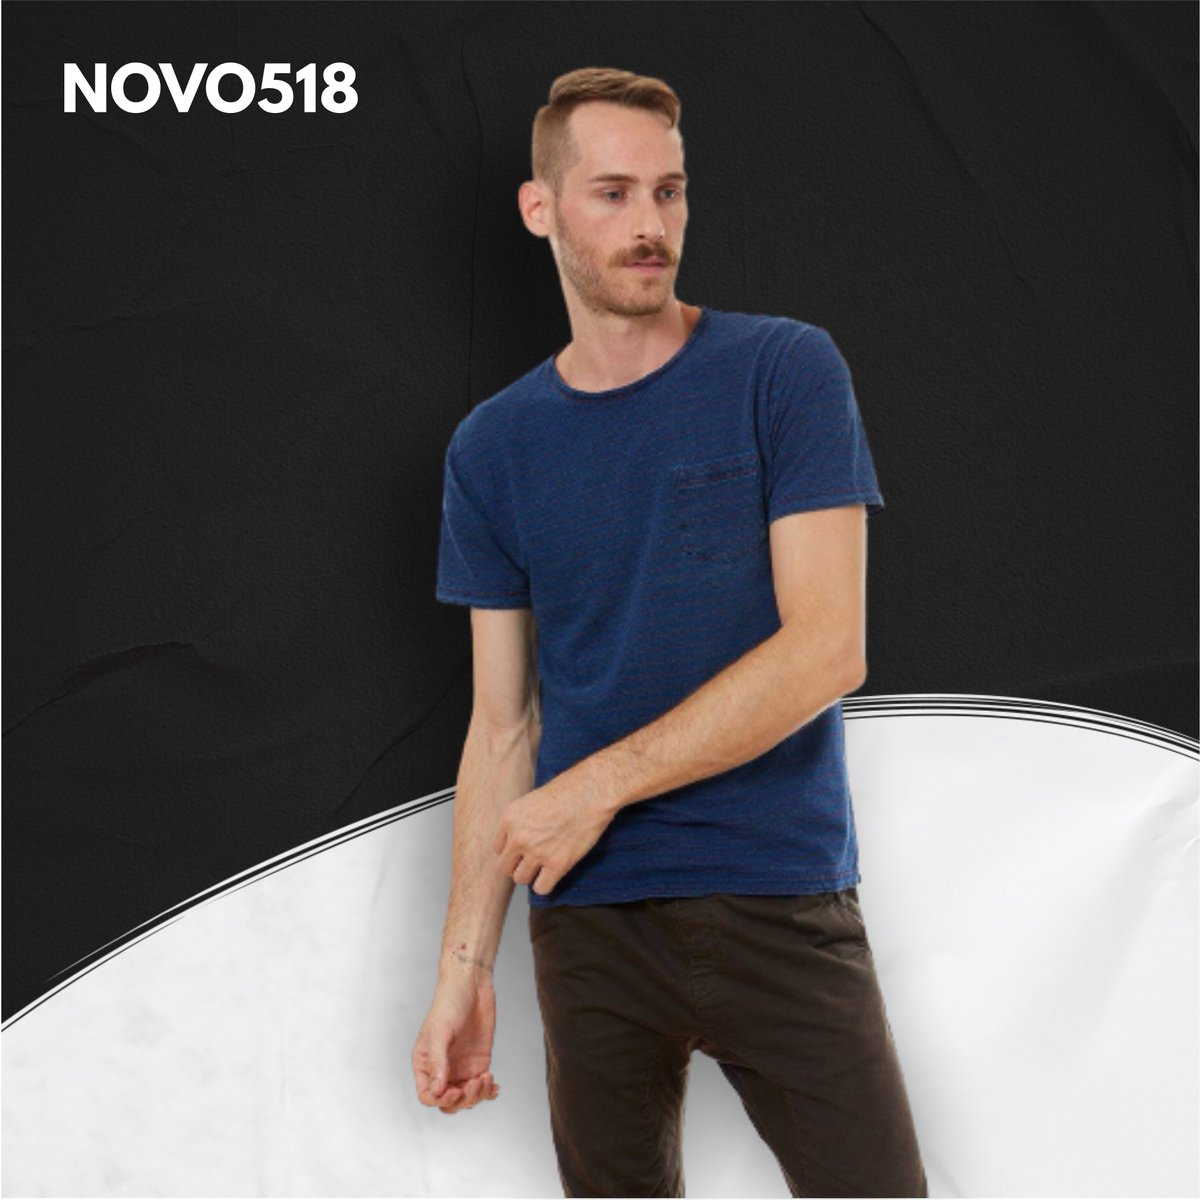 This ever-versatile t-shirt is a style staple your wardrobe needs. Perfect for casual look. Featuring a blue fabric with a classic fit, team this with chunky kicks and shades for a killer combo. ---- 🌐 https://t.co/4KxvfLC7b6 . #novo518 #tshirts #tshirt #fashion #tshirtdesign https://t.co/ryA9emCVxw